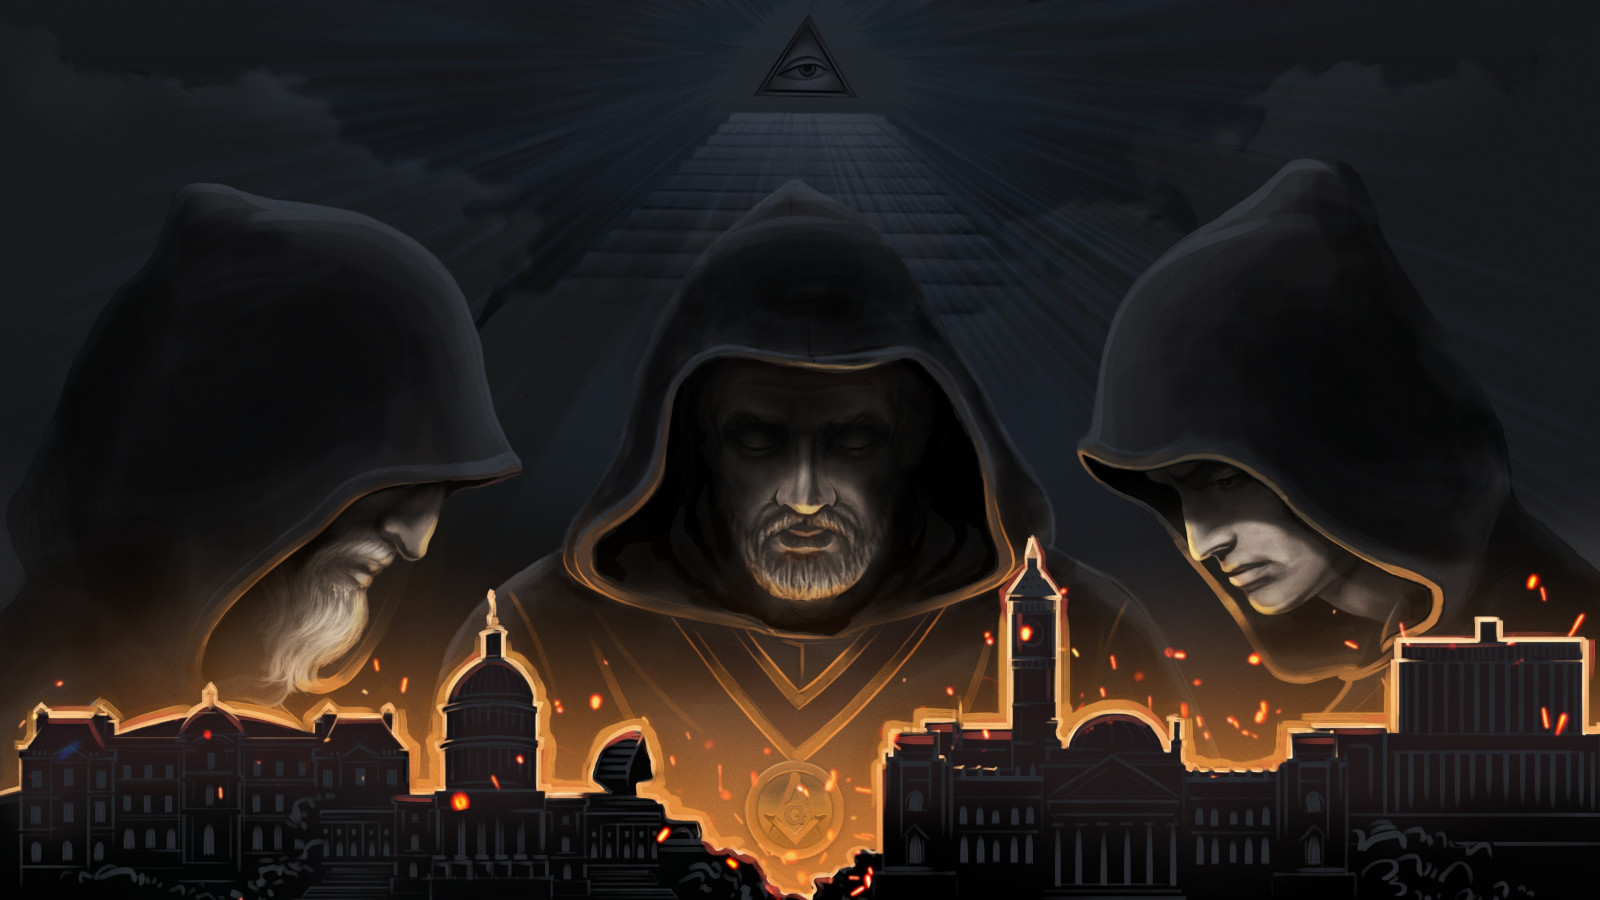 Secret Government wallpaper 1600x900